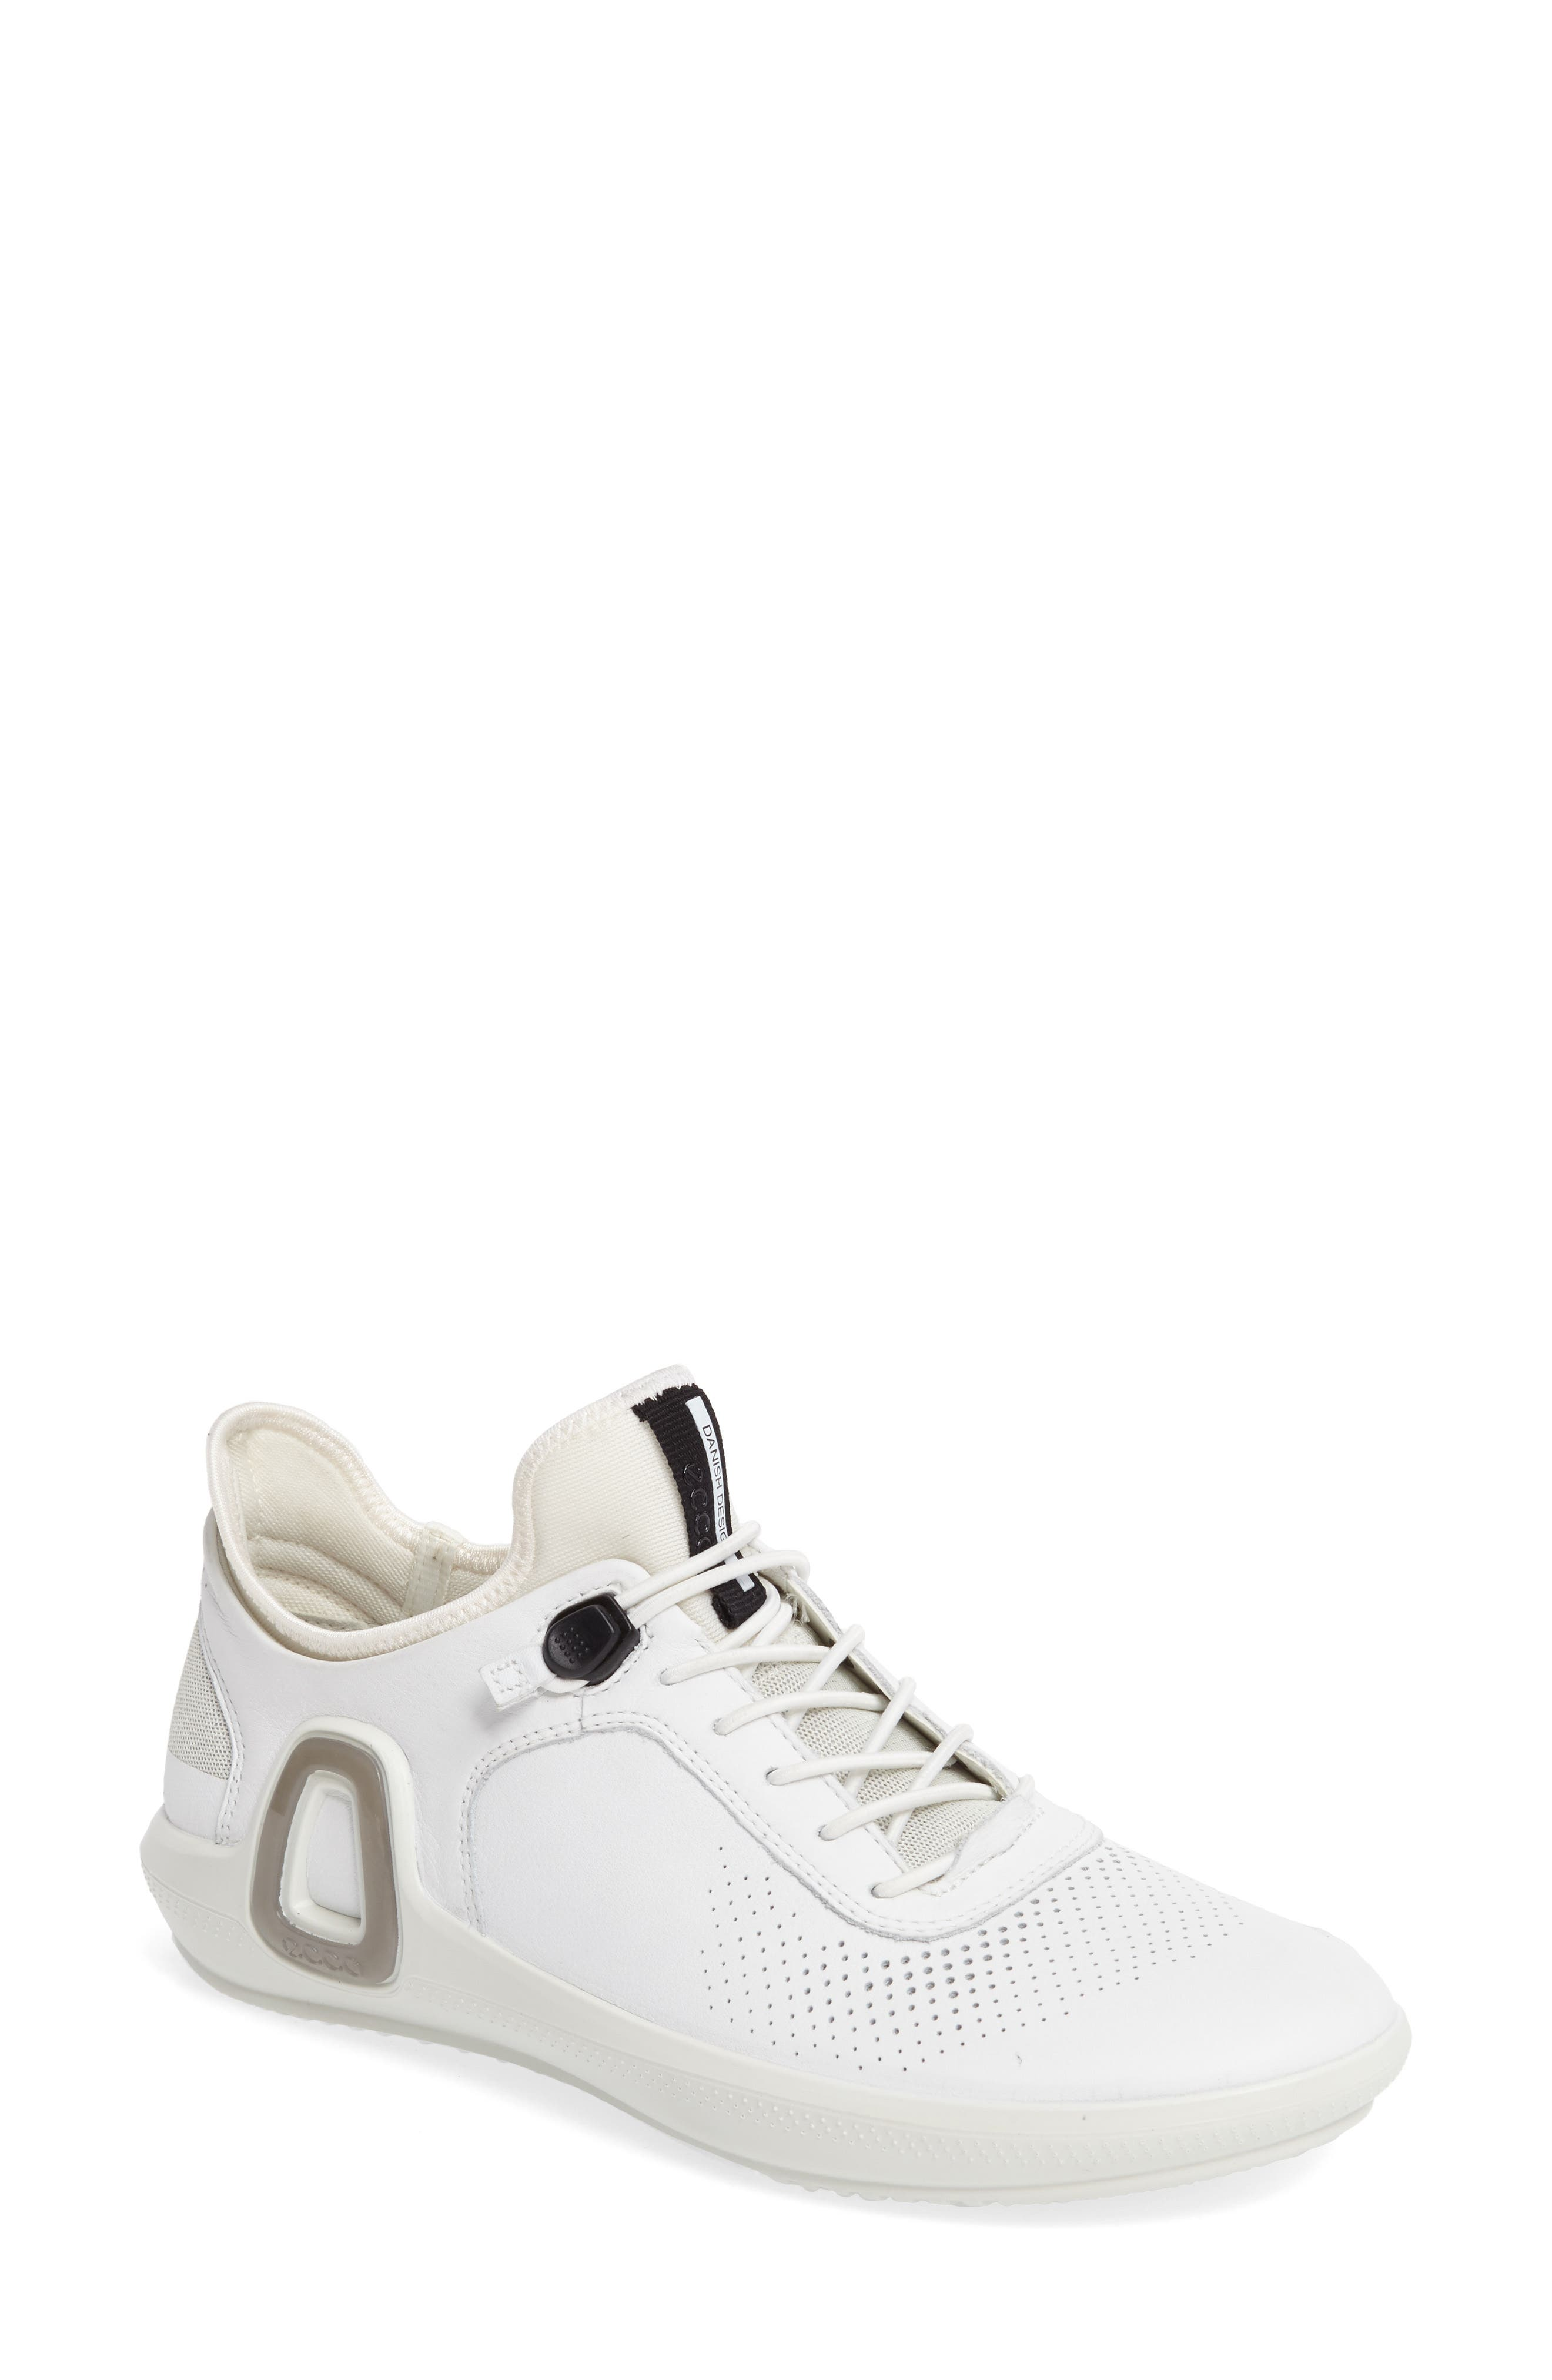 Intrinsic 3 Sneaker,                             Main thumbnail 1, color,                             WHITE LEATHER